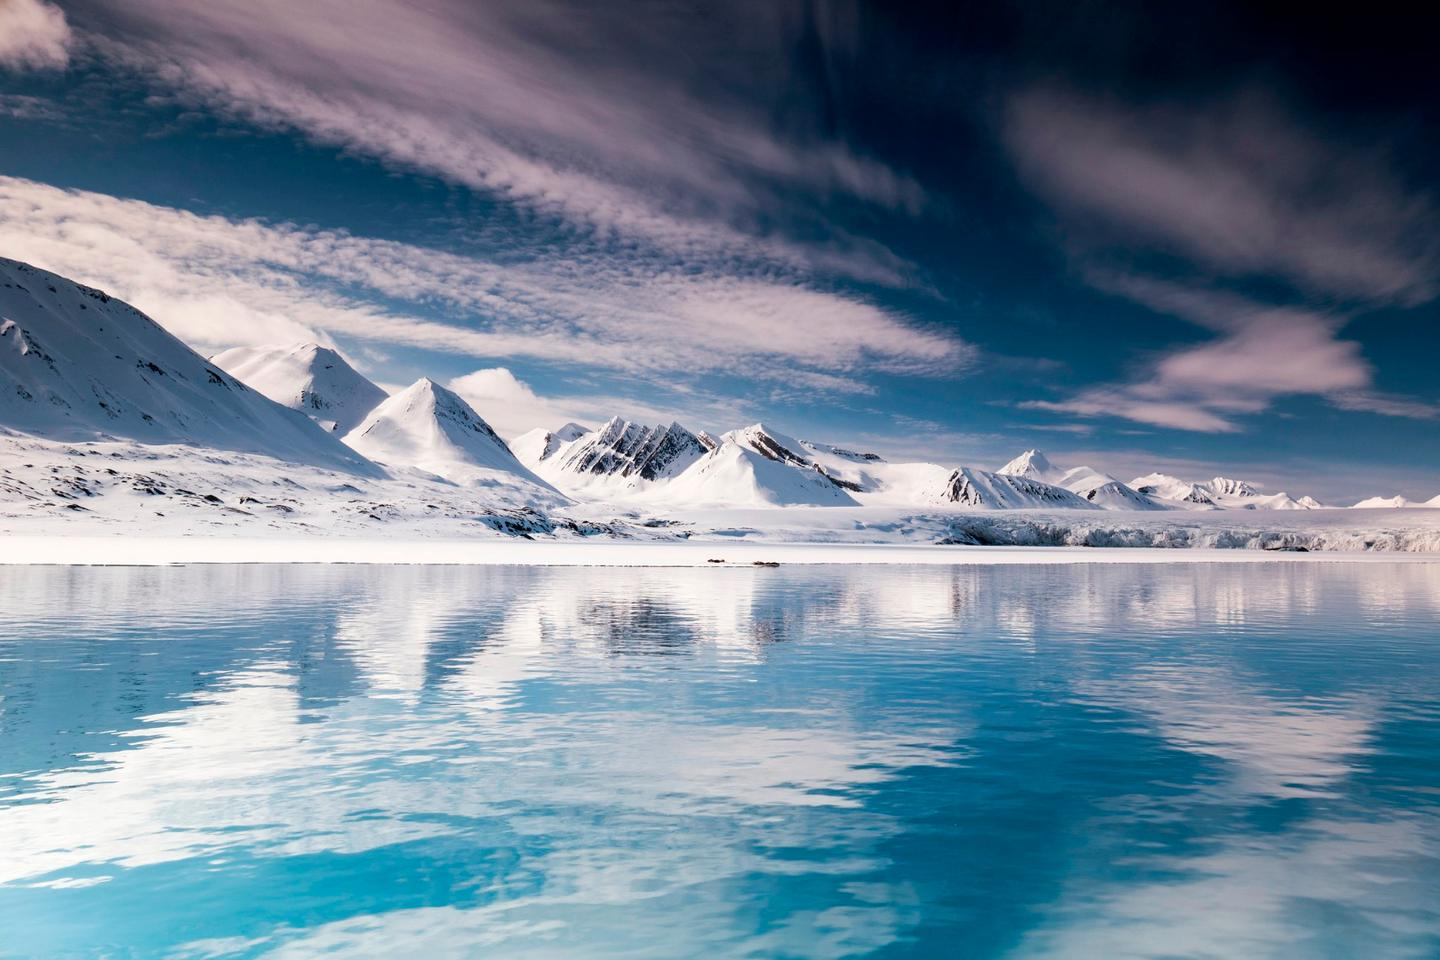 Antibiotic-resistant genes have been discovered inSvalbard, a remote archipelago north of Norway